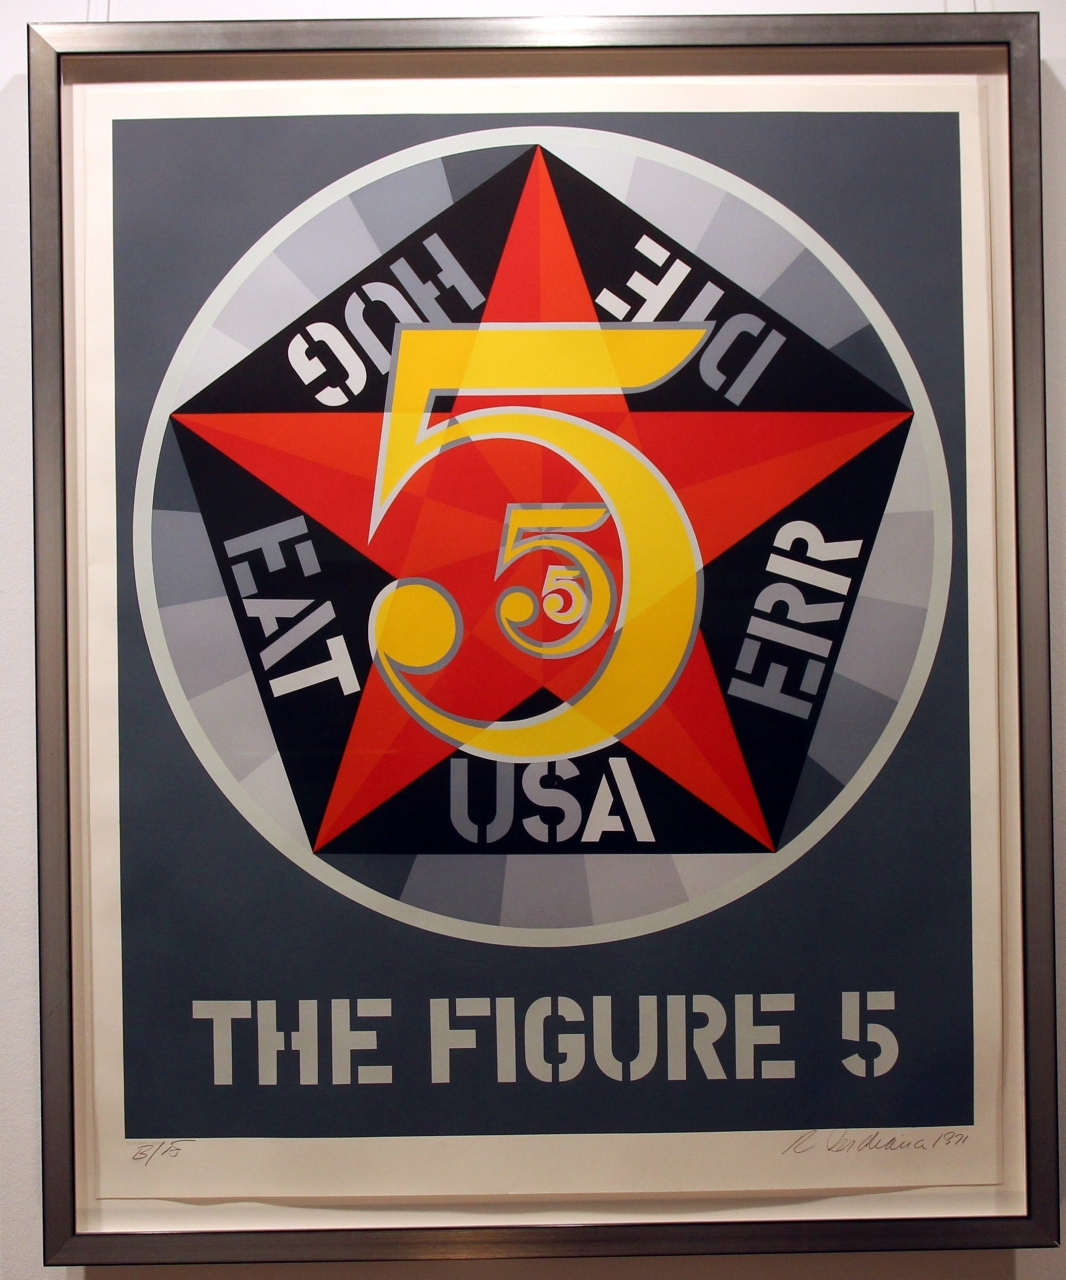 The Figure 5 (Decade series)